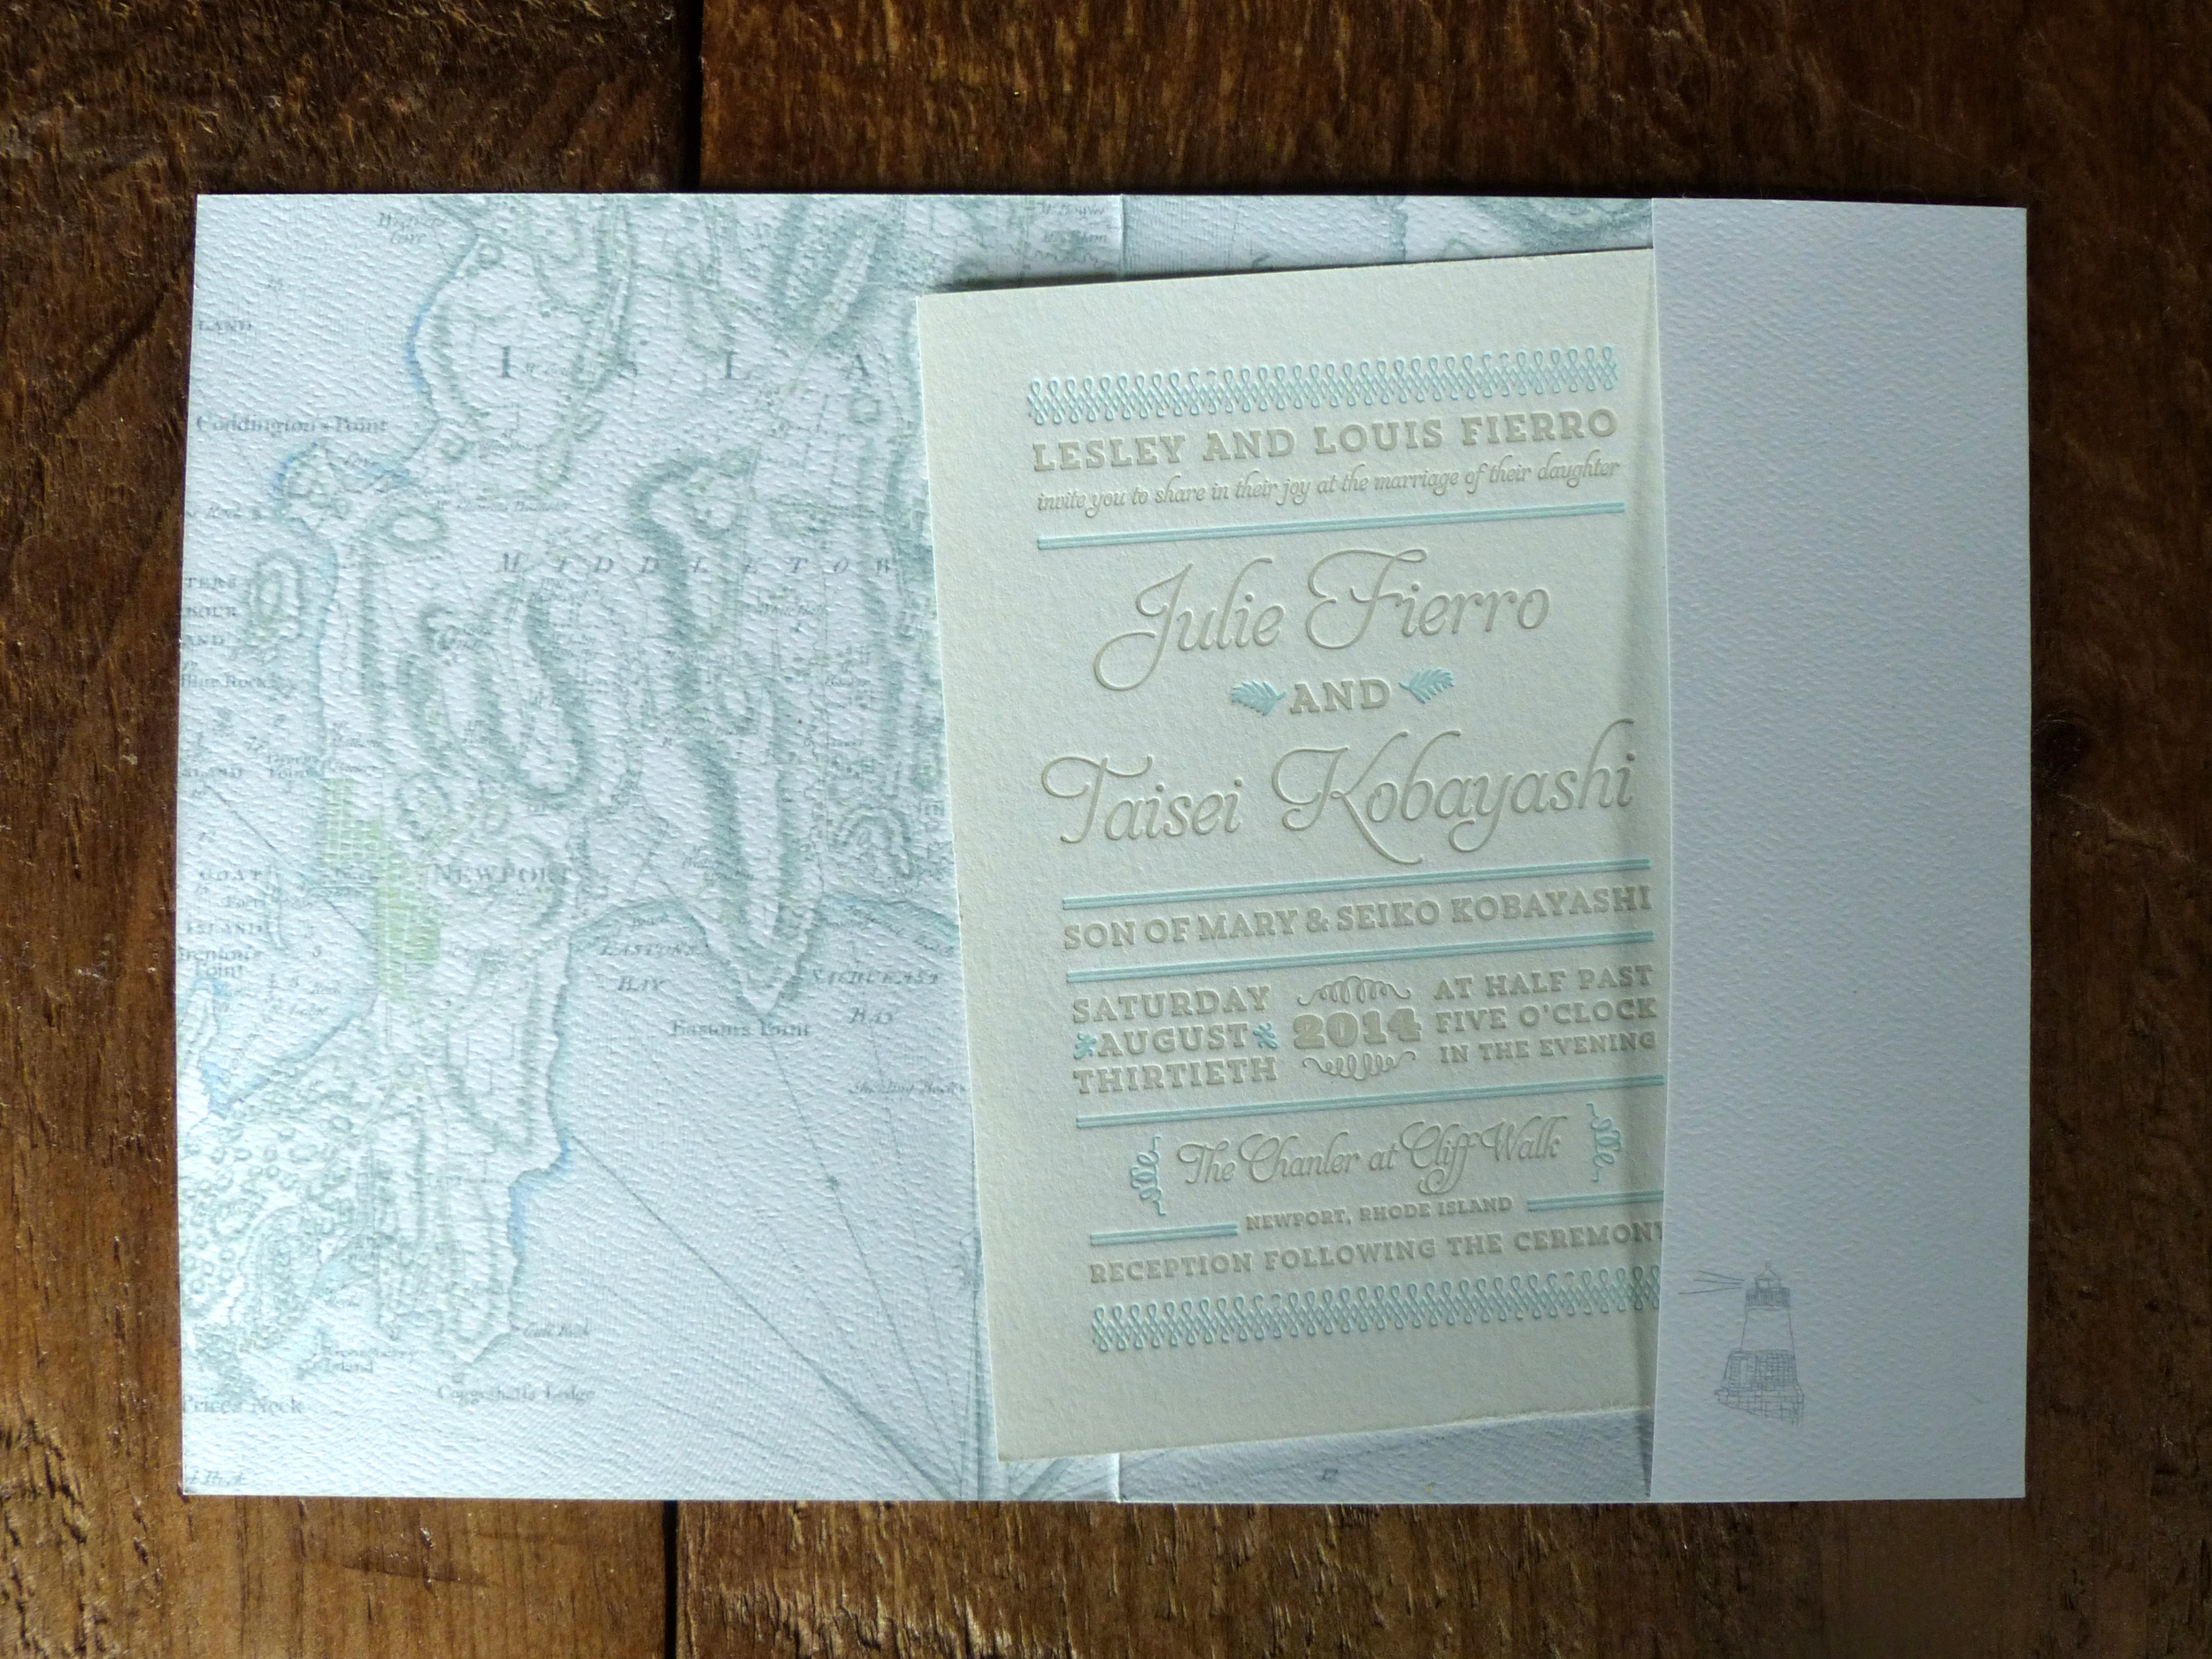 The inside of the folder was printed with a full bleed nautical map of Rhode Island. The two color letterpress invitation has a vintage classic look in order to coordinate with the history of the venue.